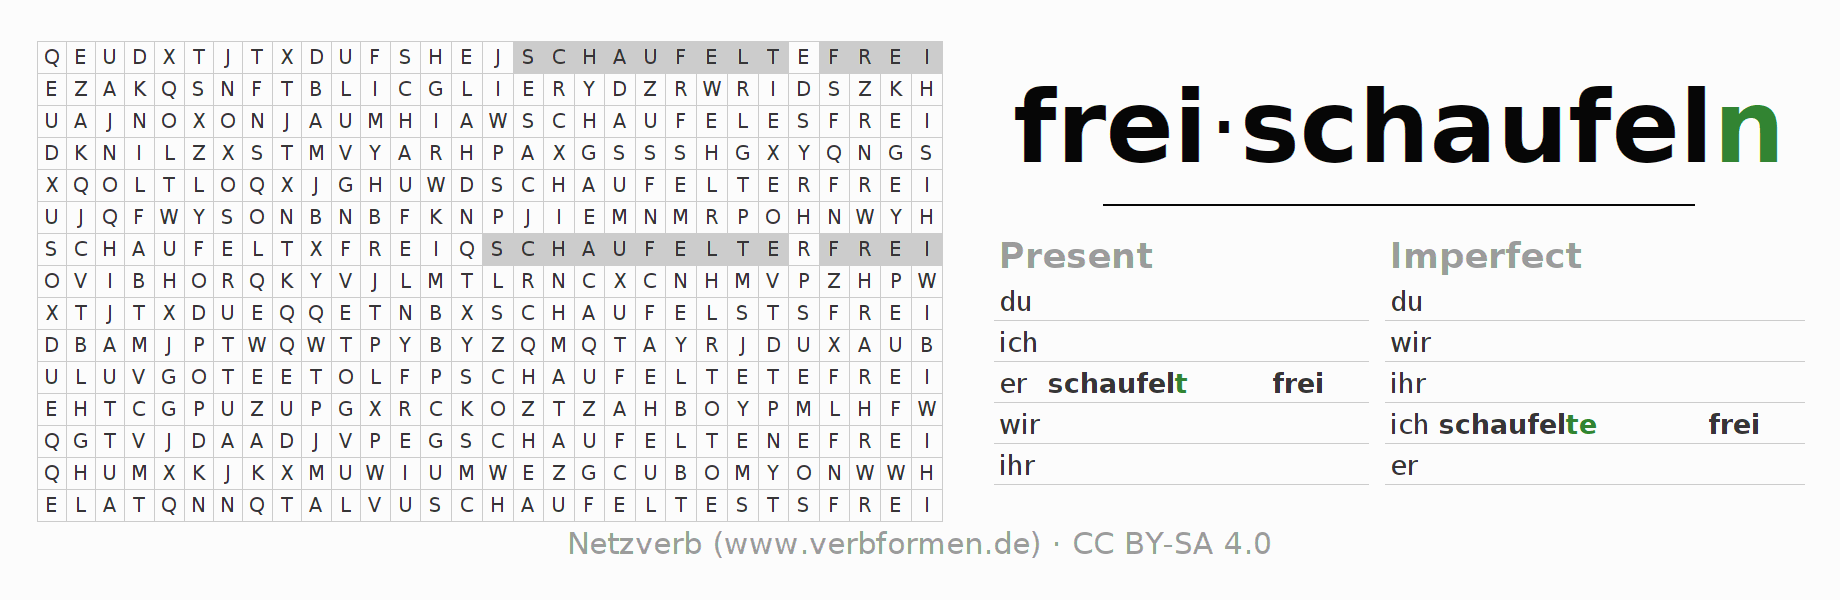 Word search puzzle for the conjugation of the verb freischaufeln